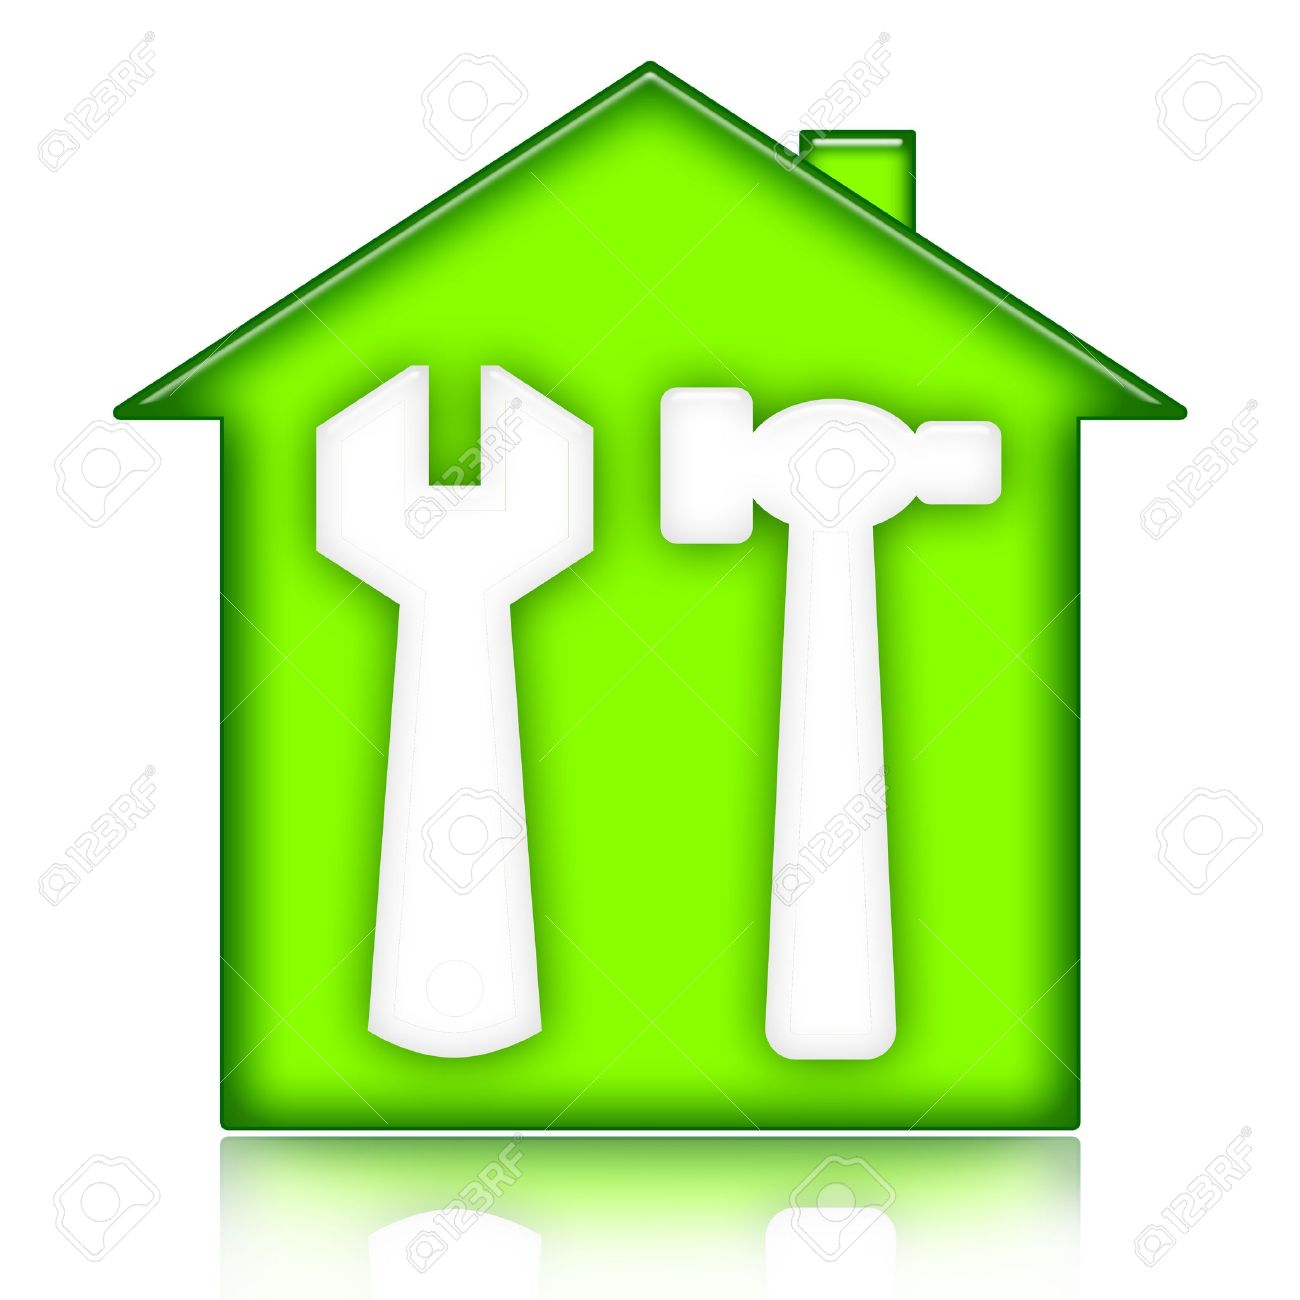 Home Building And Renovation, Green House With Wrench And Hammer.